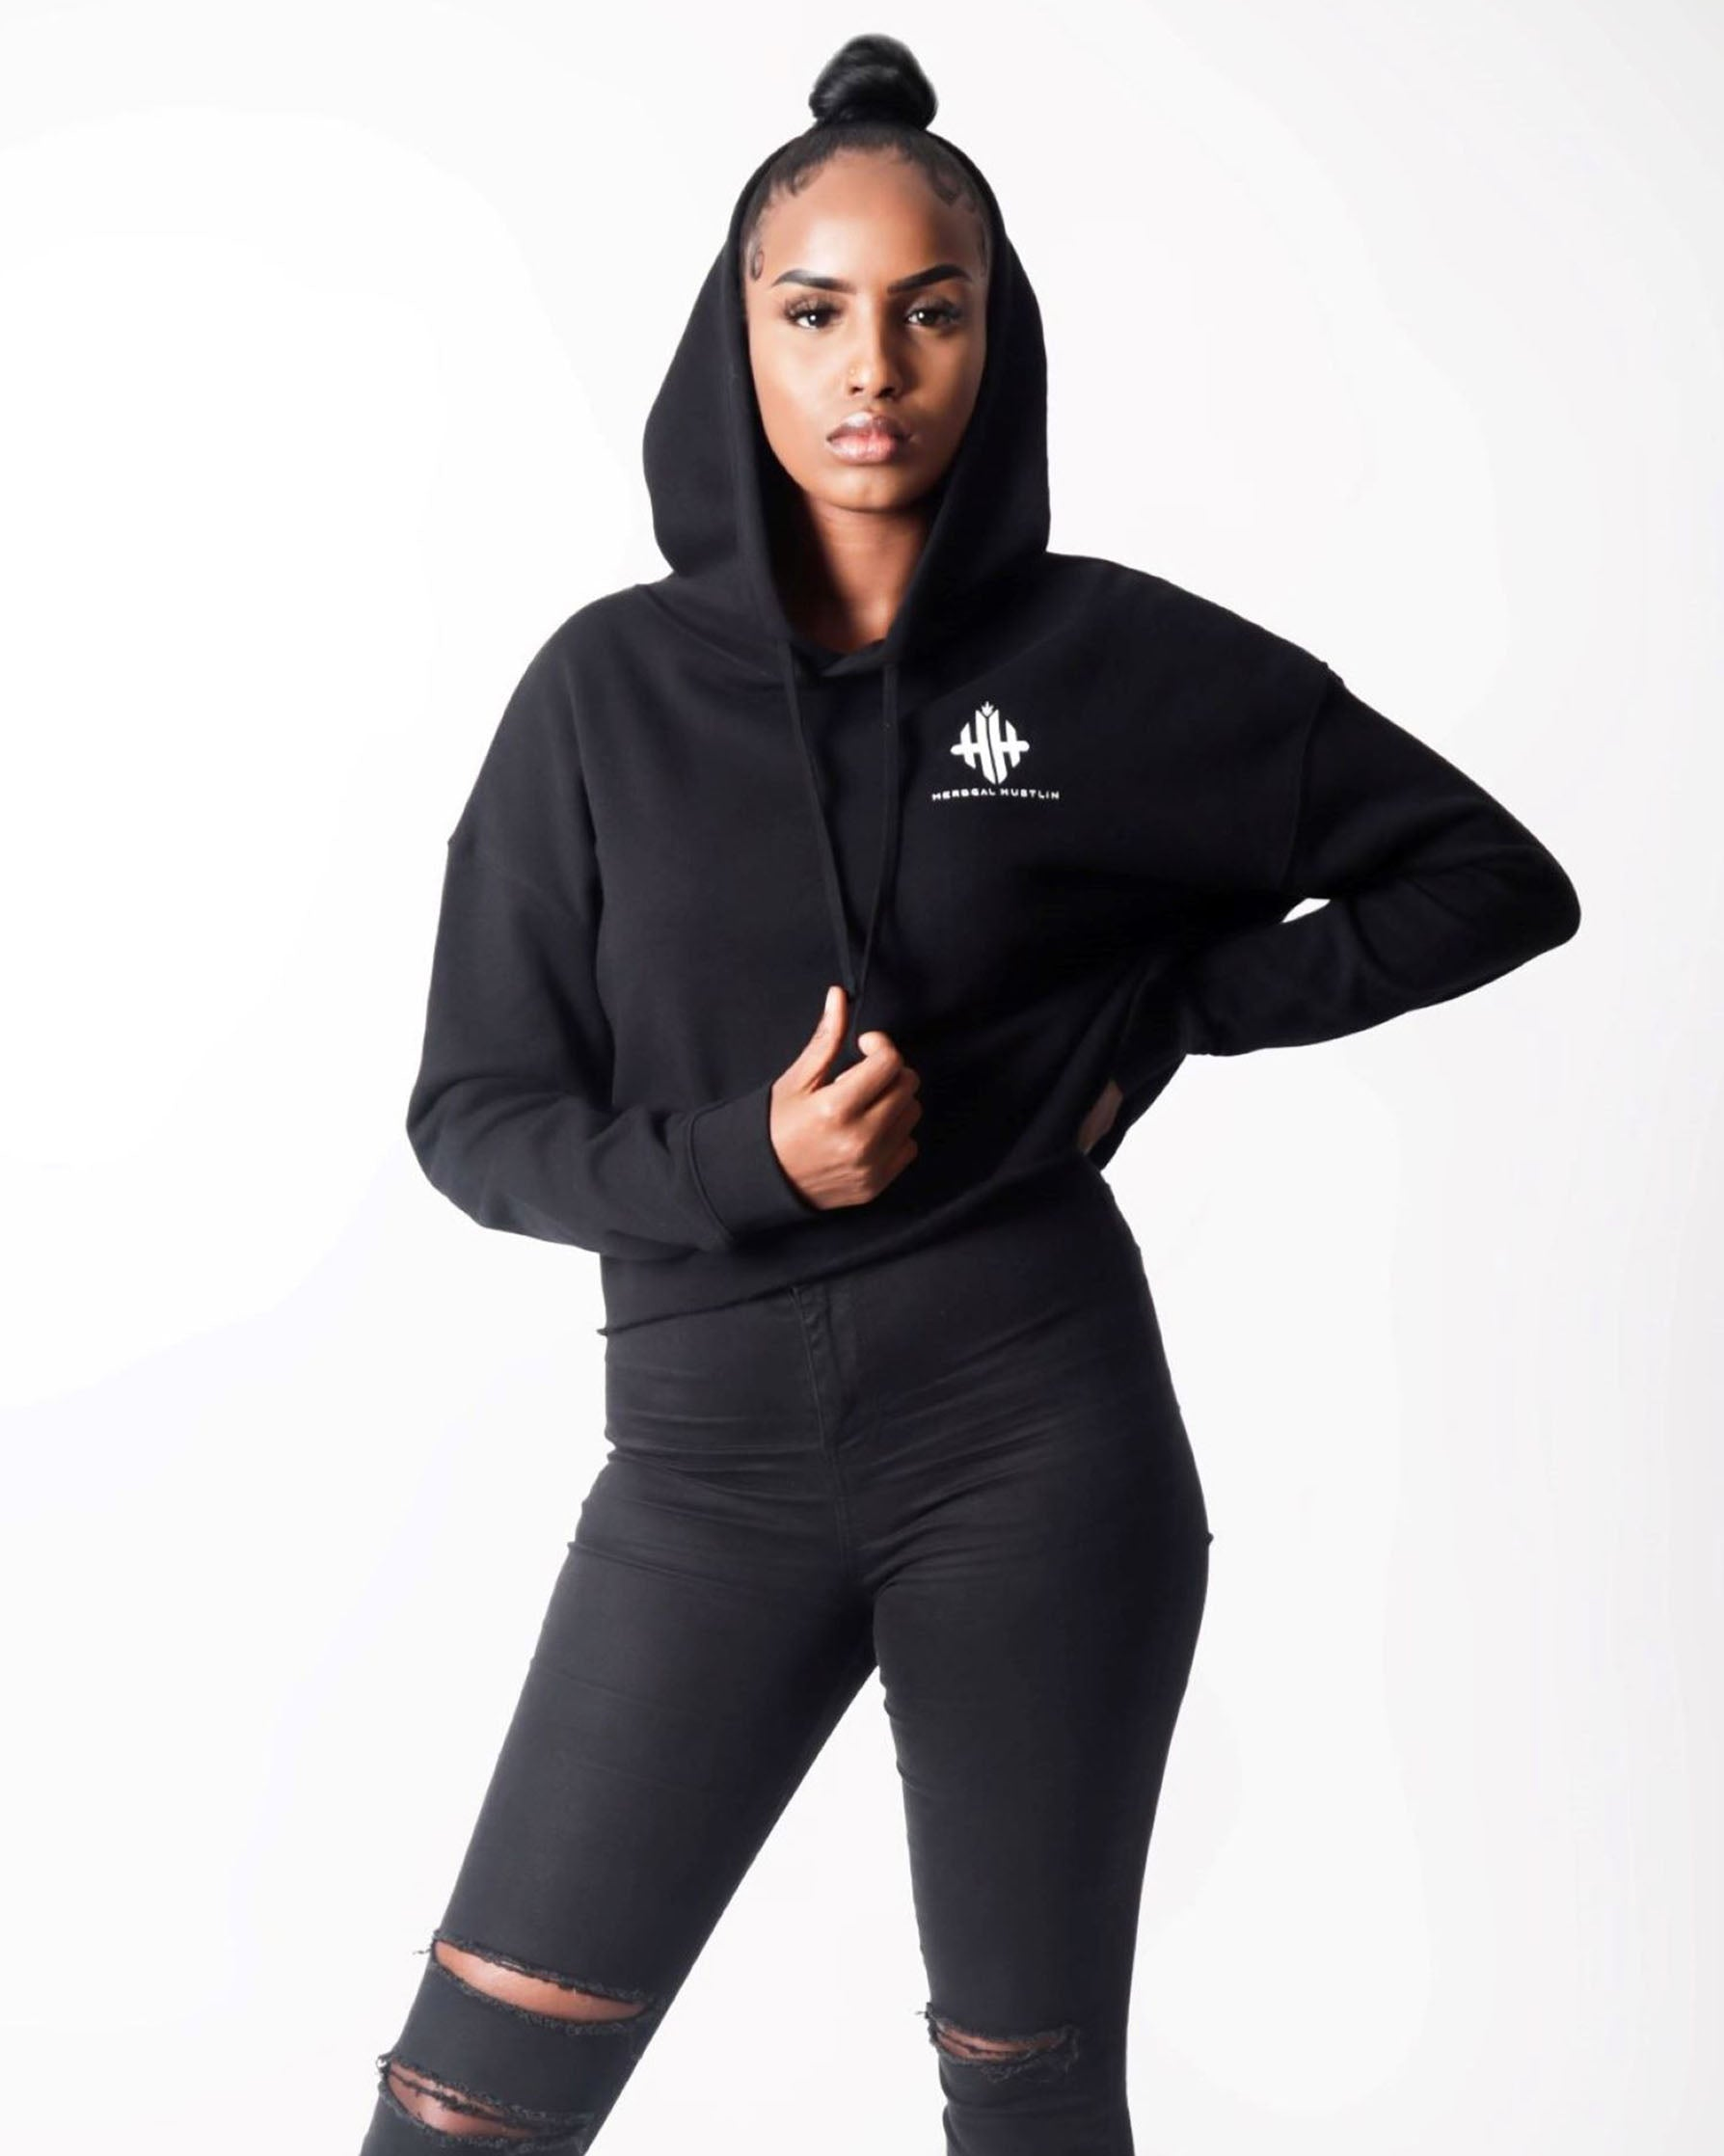 Herbgal Hustlin Monogram Cropped Hoodie - Black/White - Front